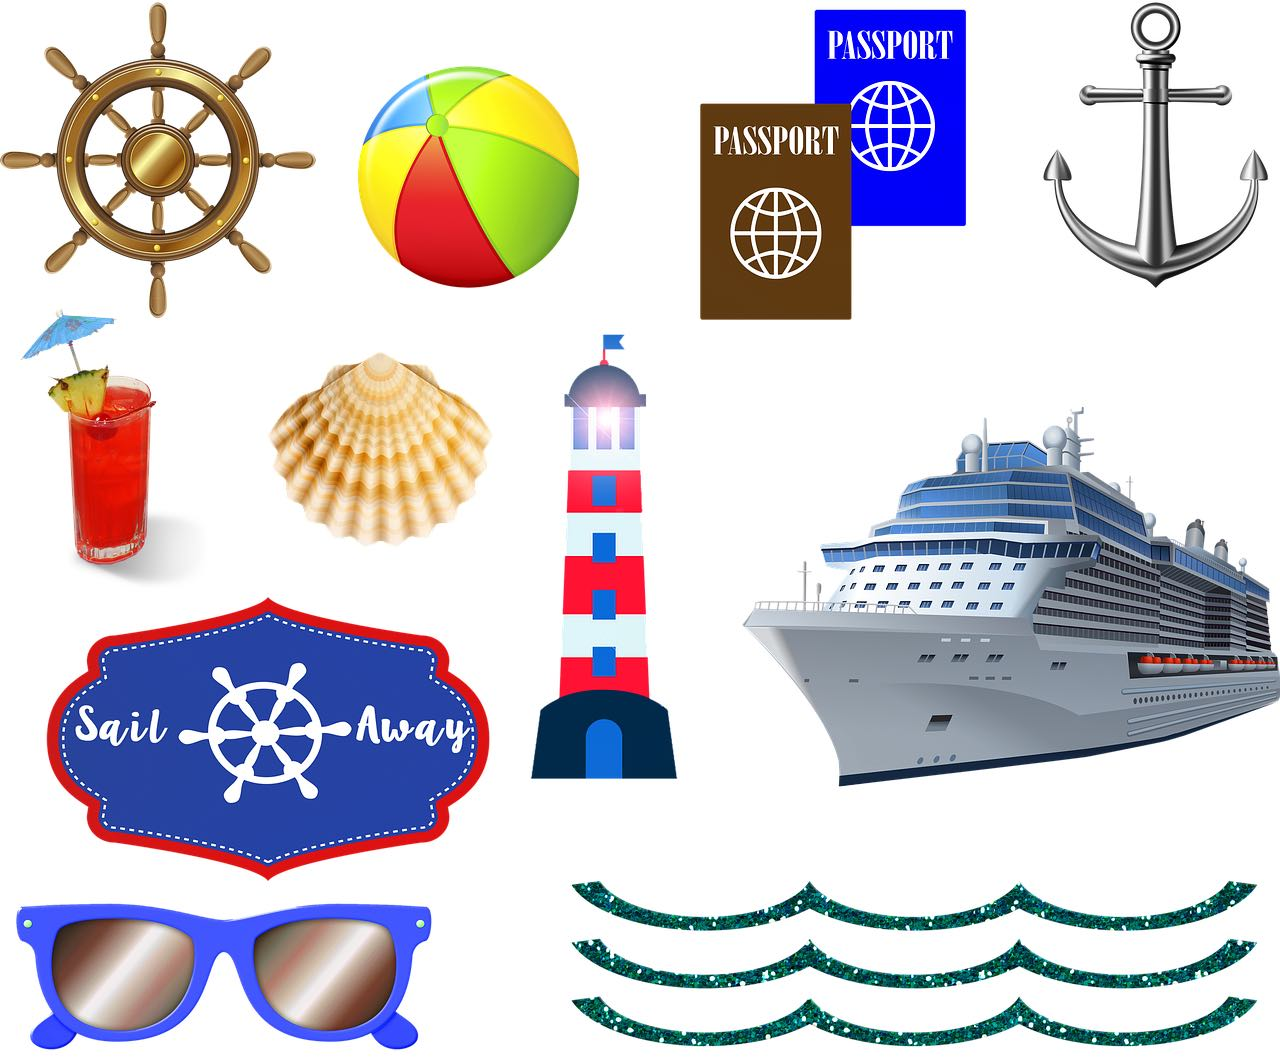 caribbean dual passport_ocean_cruise_dual passport_PD